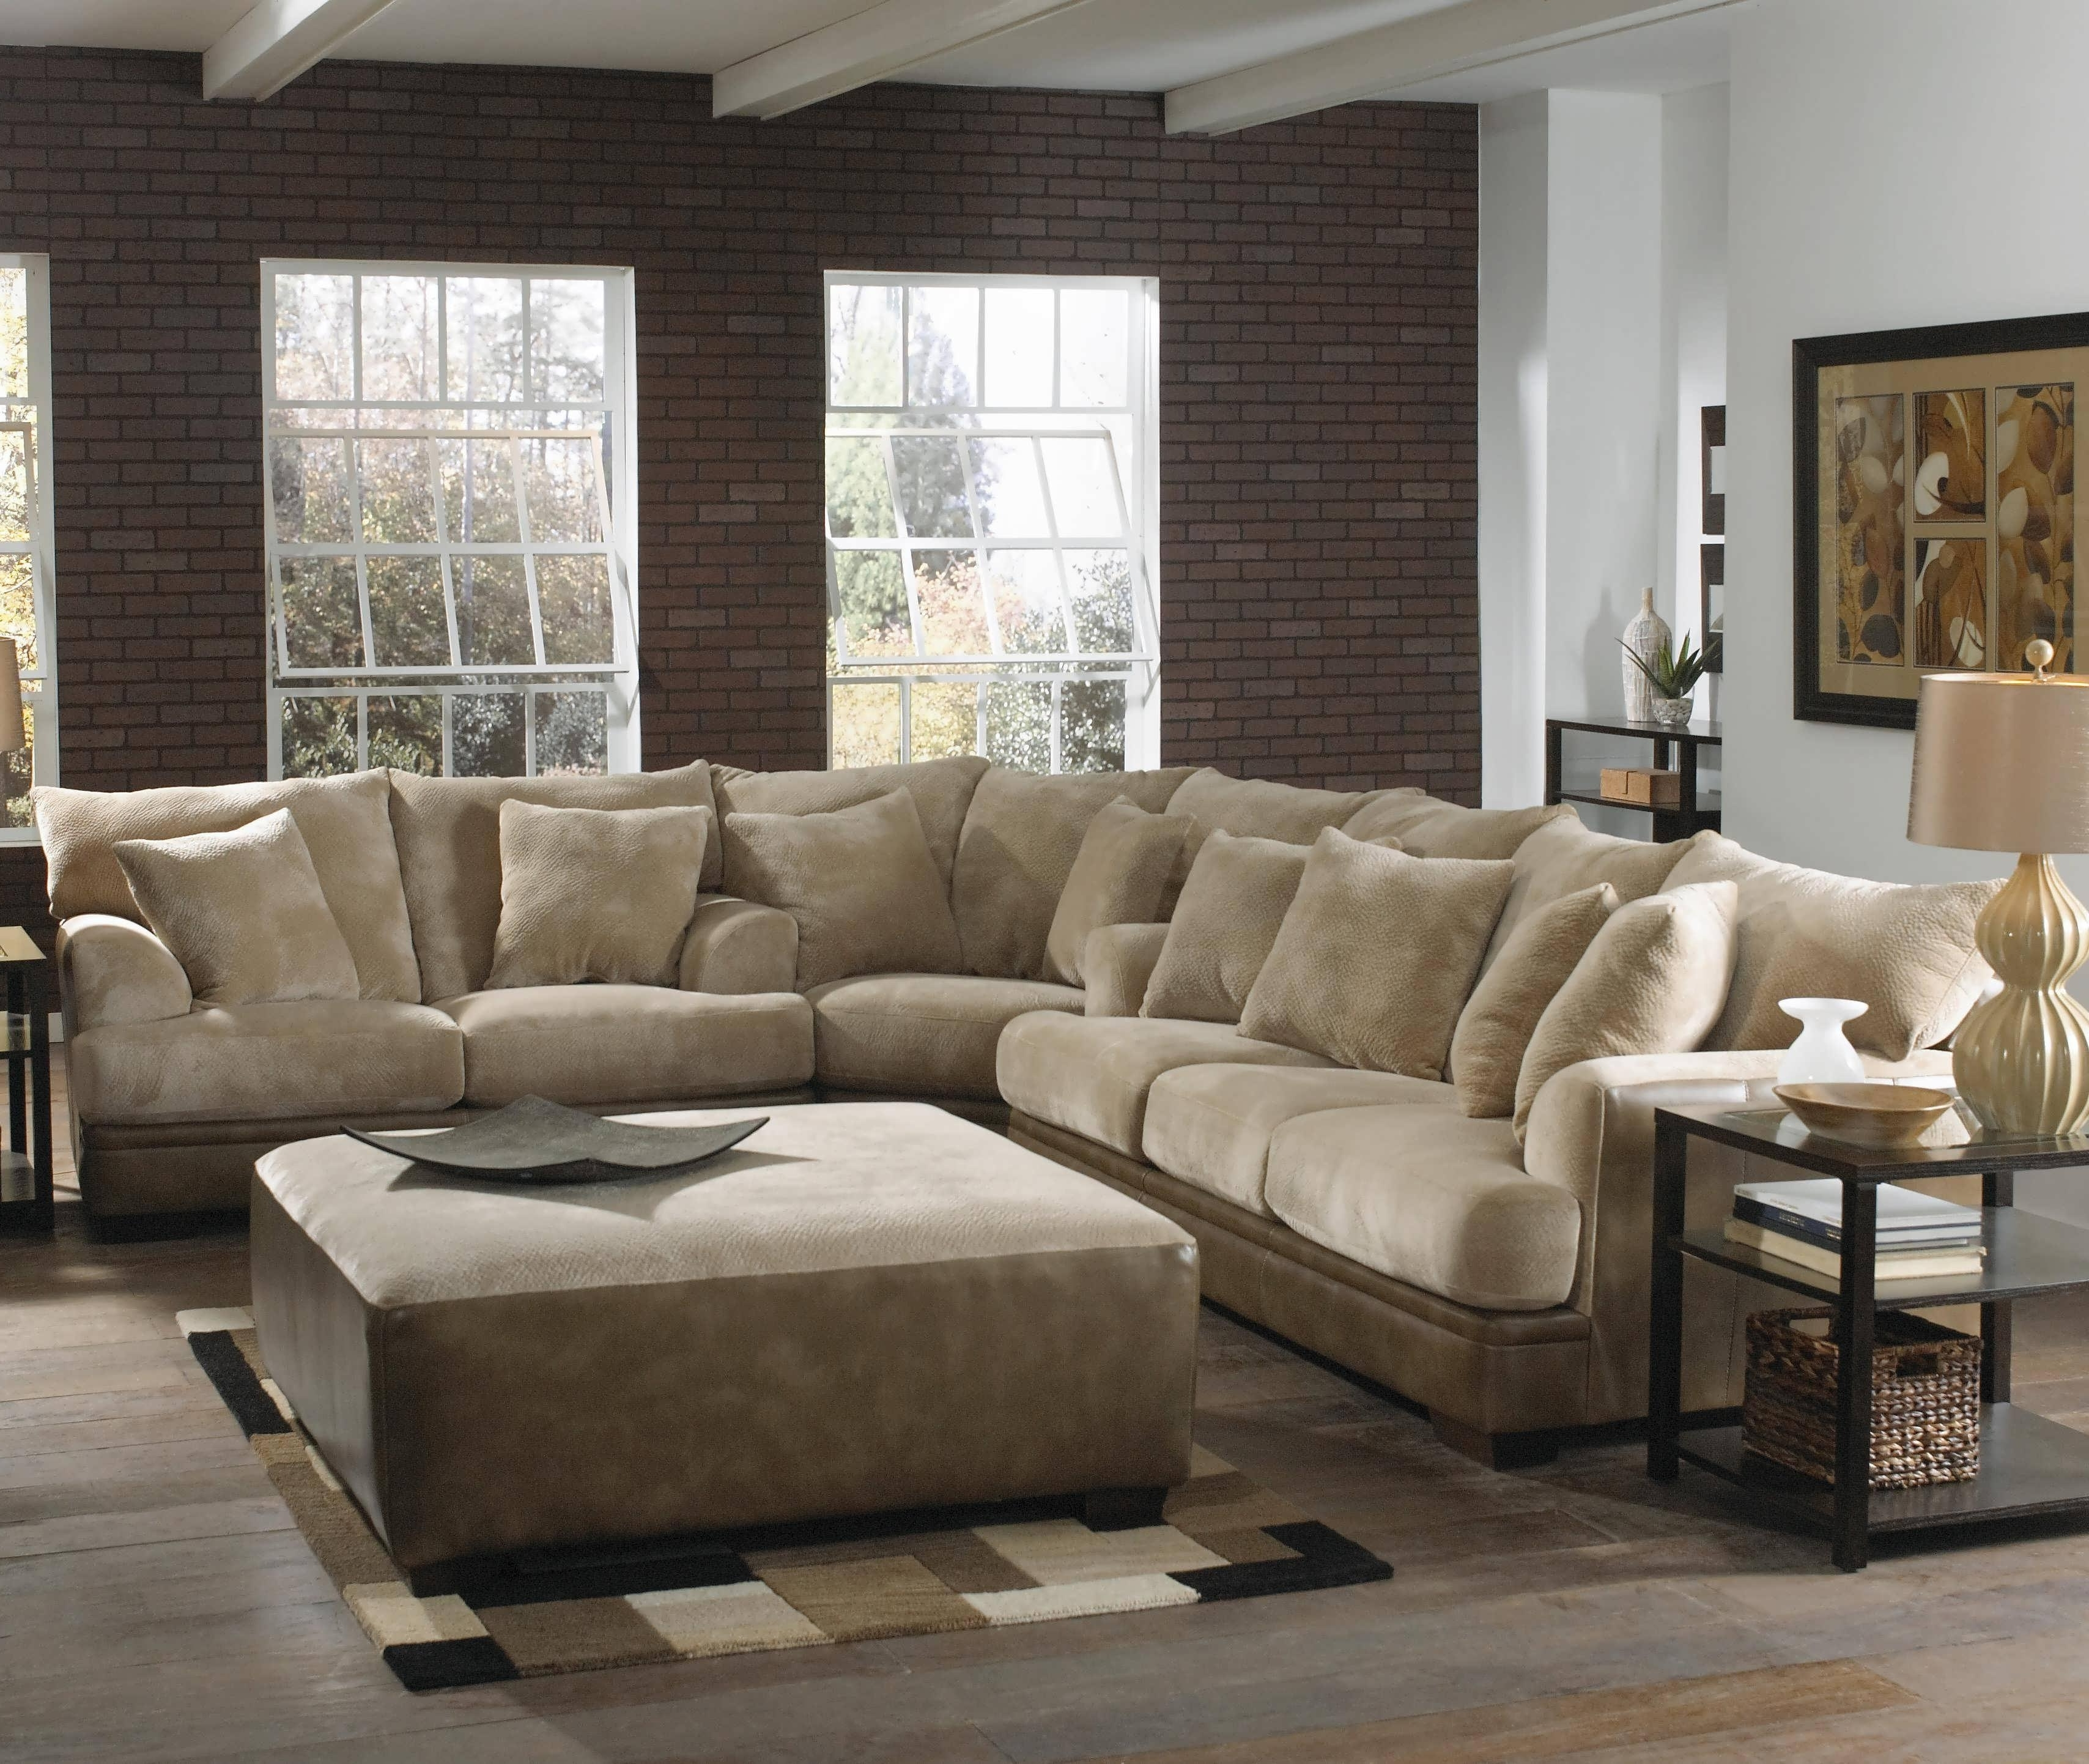 Sectional Sofas At Austin With Most Current Furniture : Oversized Loveseat Inspirational Large Fy Sectional (View 18 of 20)